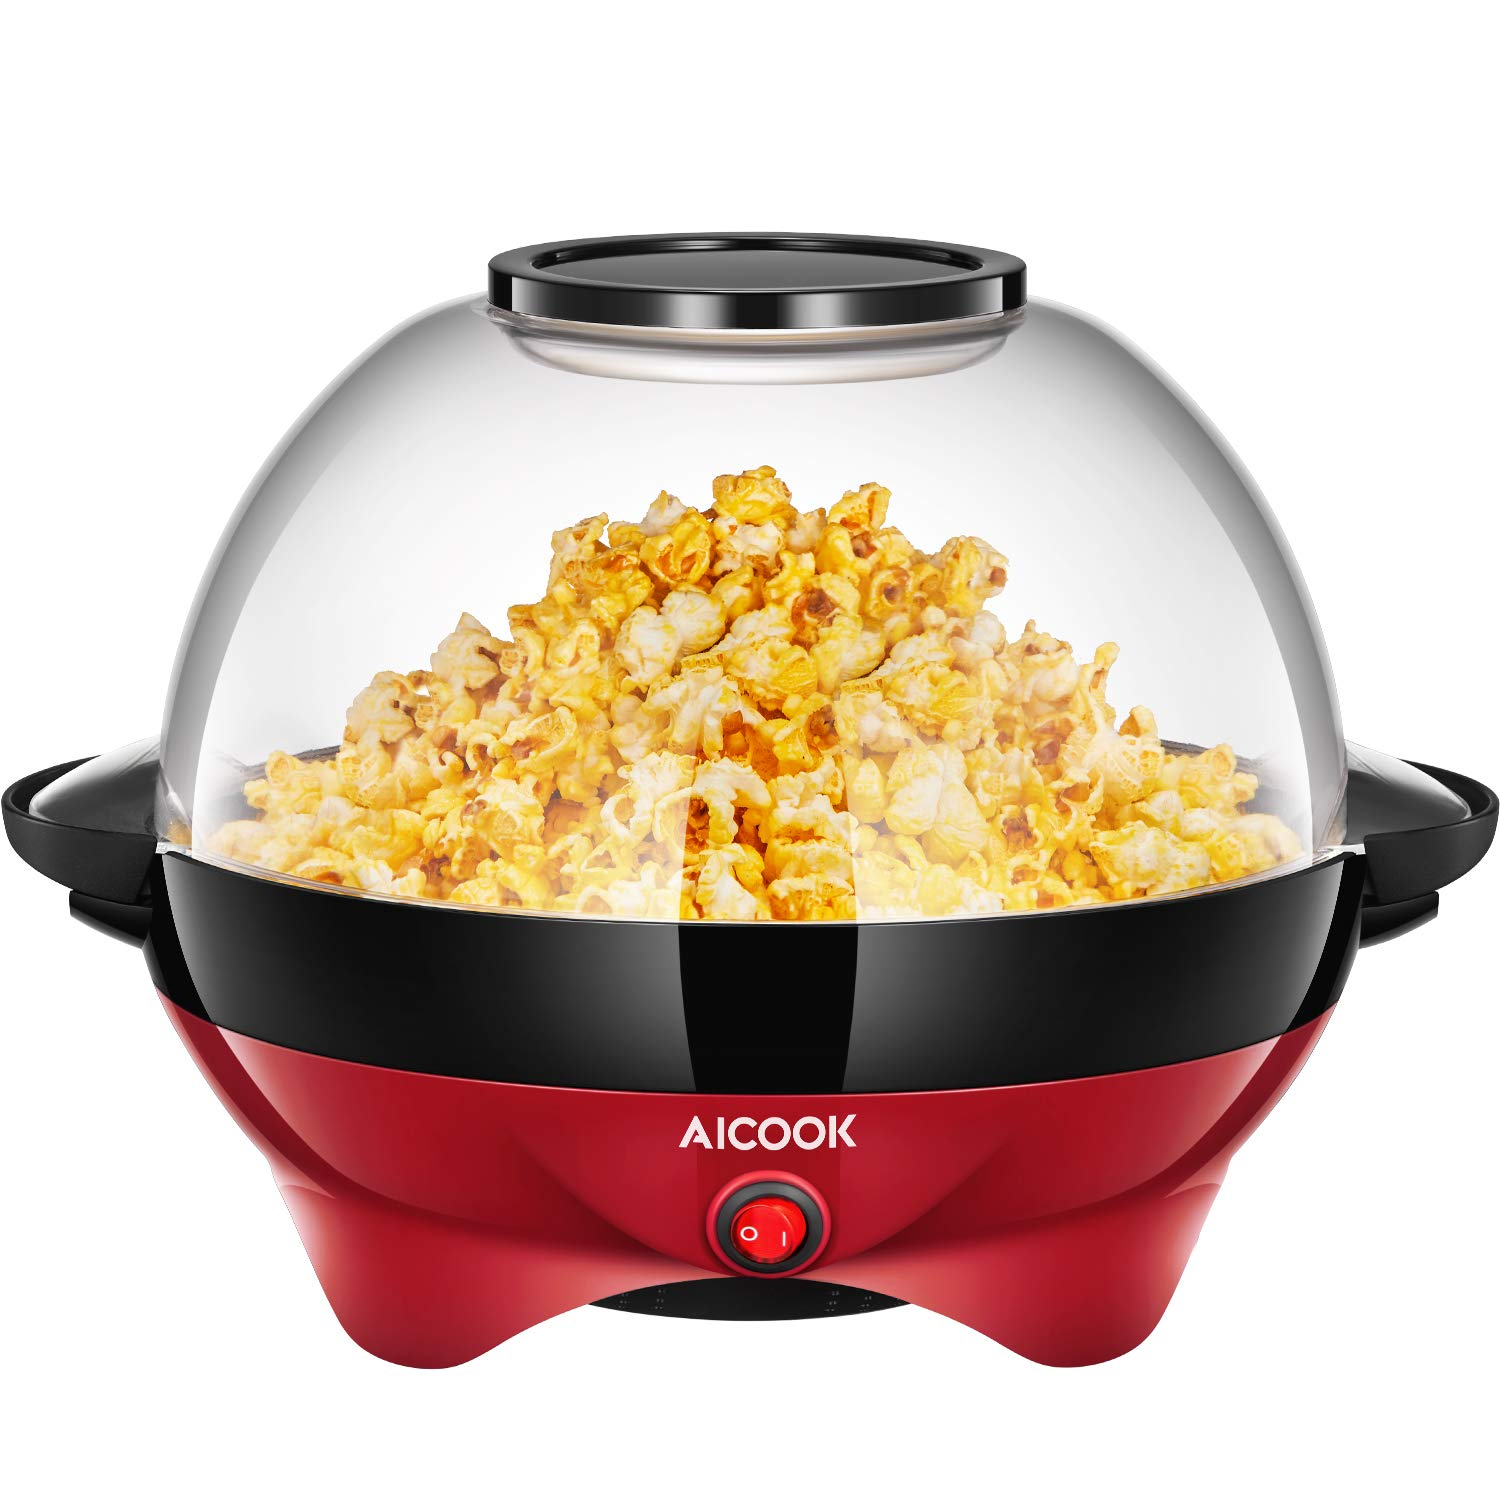 Popcorn Maker, AICOOK Electric Hot Oil Popcorn Popper Machine with Stirring Rod Offers Large Lid for Serving Bowl and Convenient Storage, 6-Quart, Red